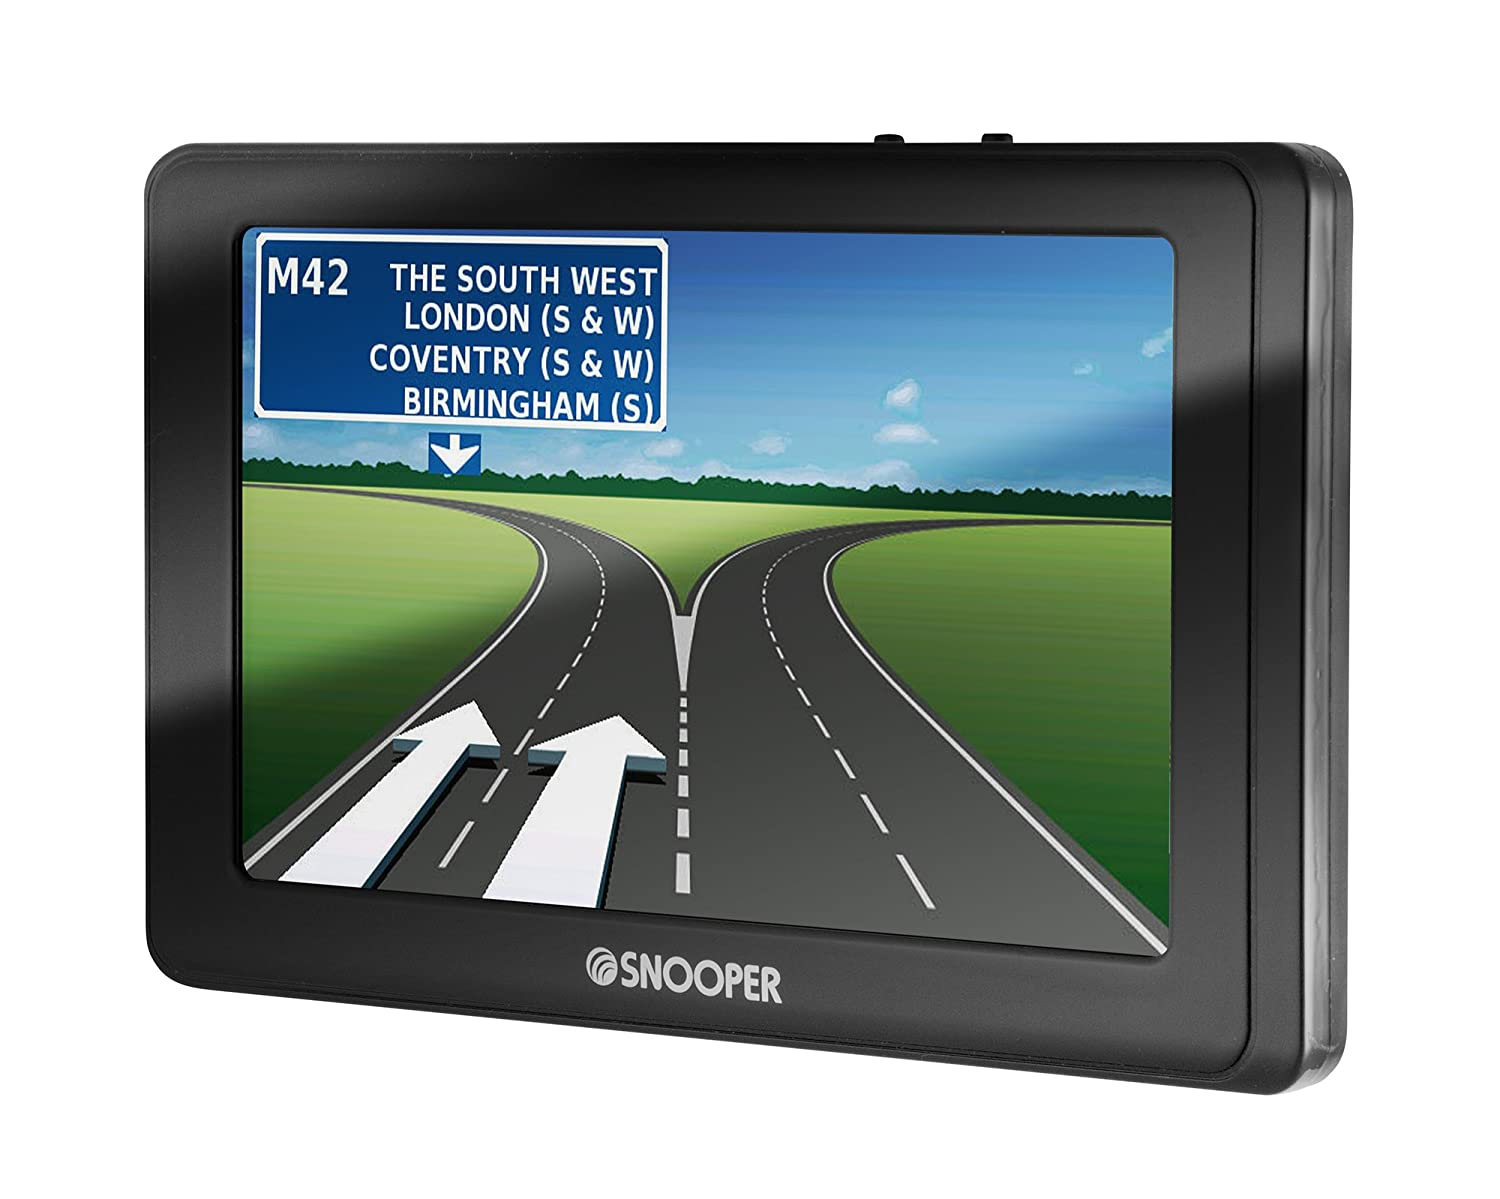 Snooper S2700 4.3 Inch Satellite Navigation System with European Lifetime Maps for Cars Performance Products Limited S2700 SYRIUS EU